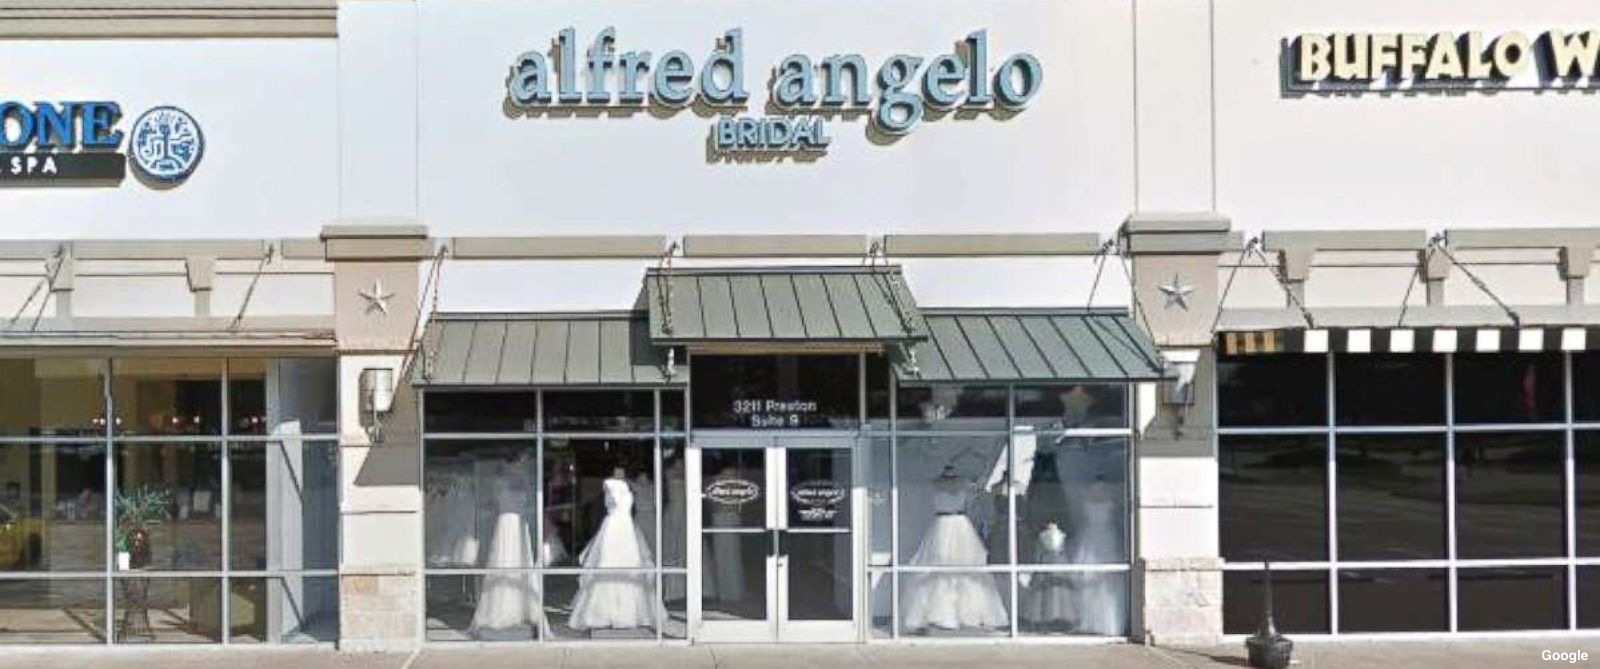 Popular bridal dress chain abruptly closes stores, leaving some brides-to-be stranded https://t.co/k22xaxVocc https://t.co/TXcuV5wL6Q